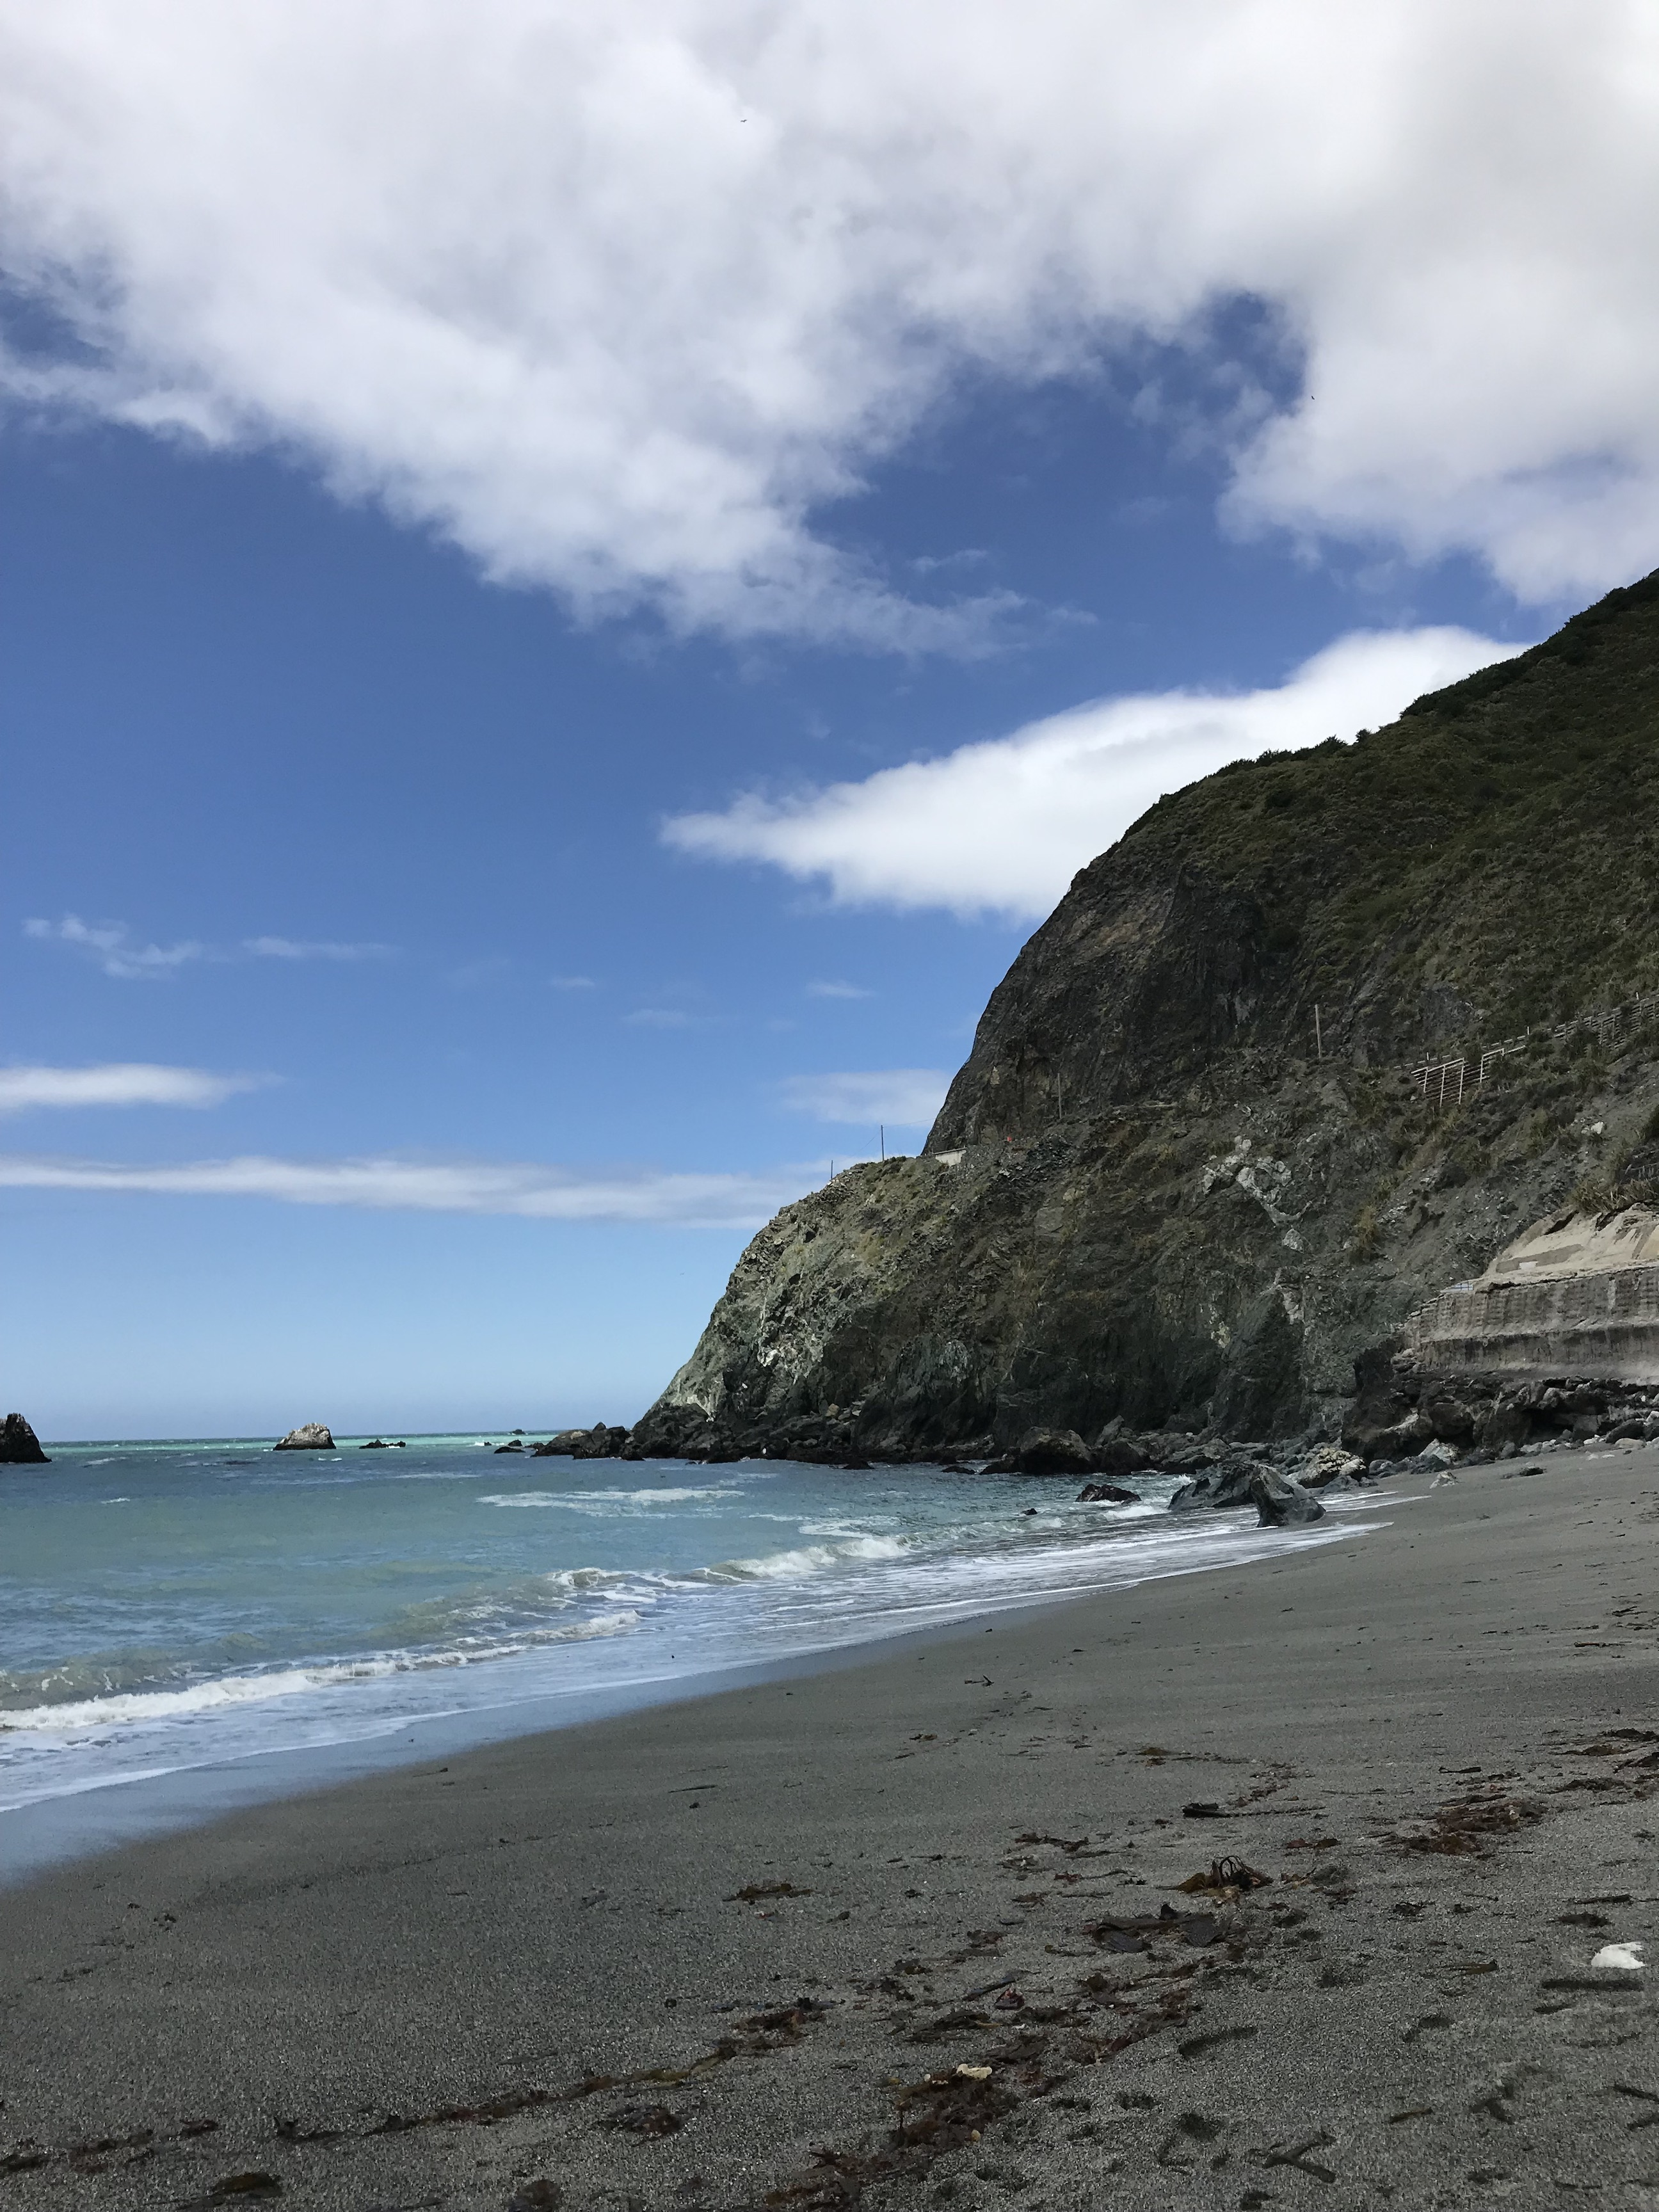 The beach at Big Sur. Tall cliffs are on the right side, and the sky is super blue with a couple of white clouds. The sand is a dark color from the pebbles, and the water is pretty calm.